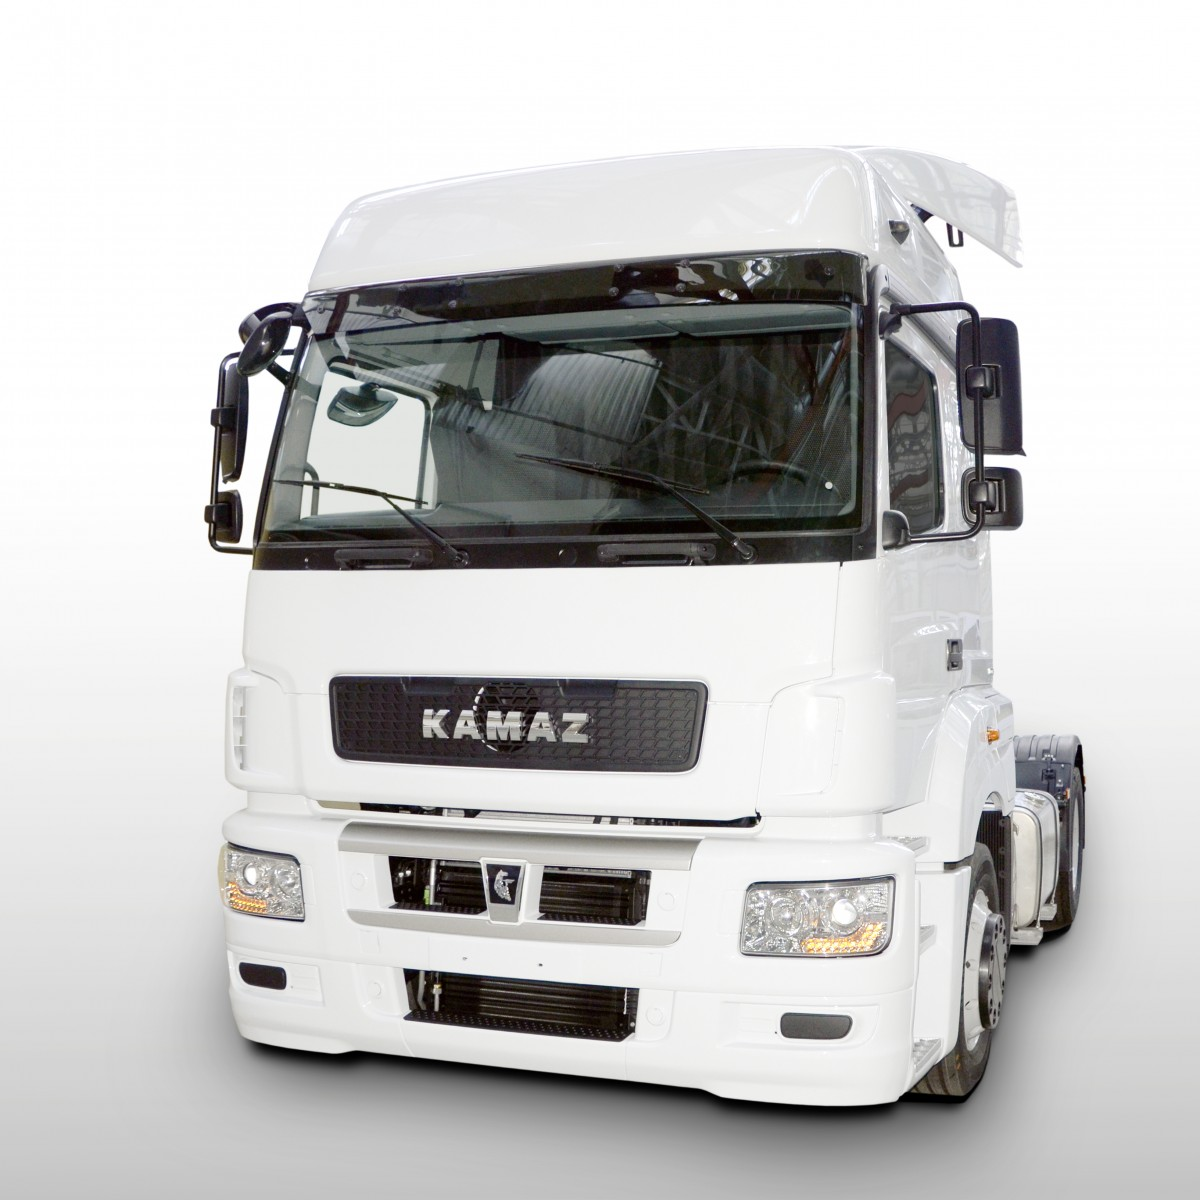 Daimler Trucks And Kamaz Unveil Jointly Developed Truck In